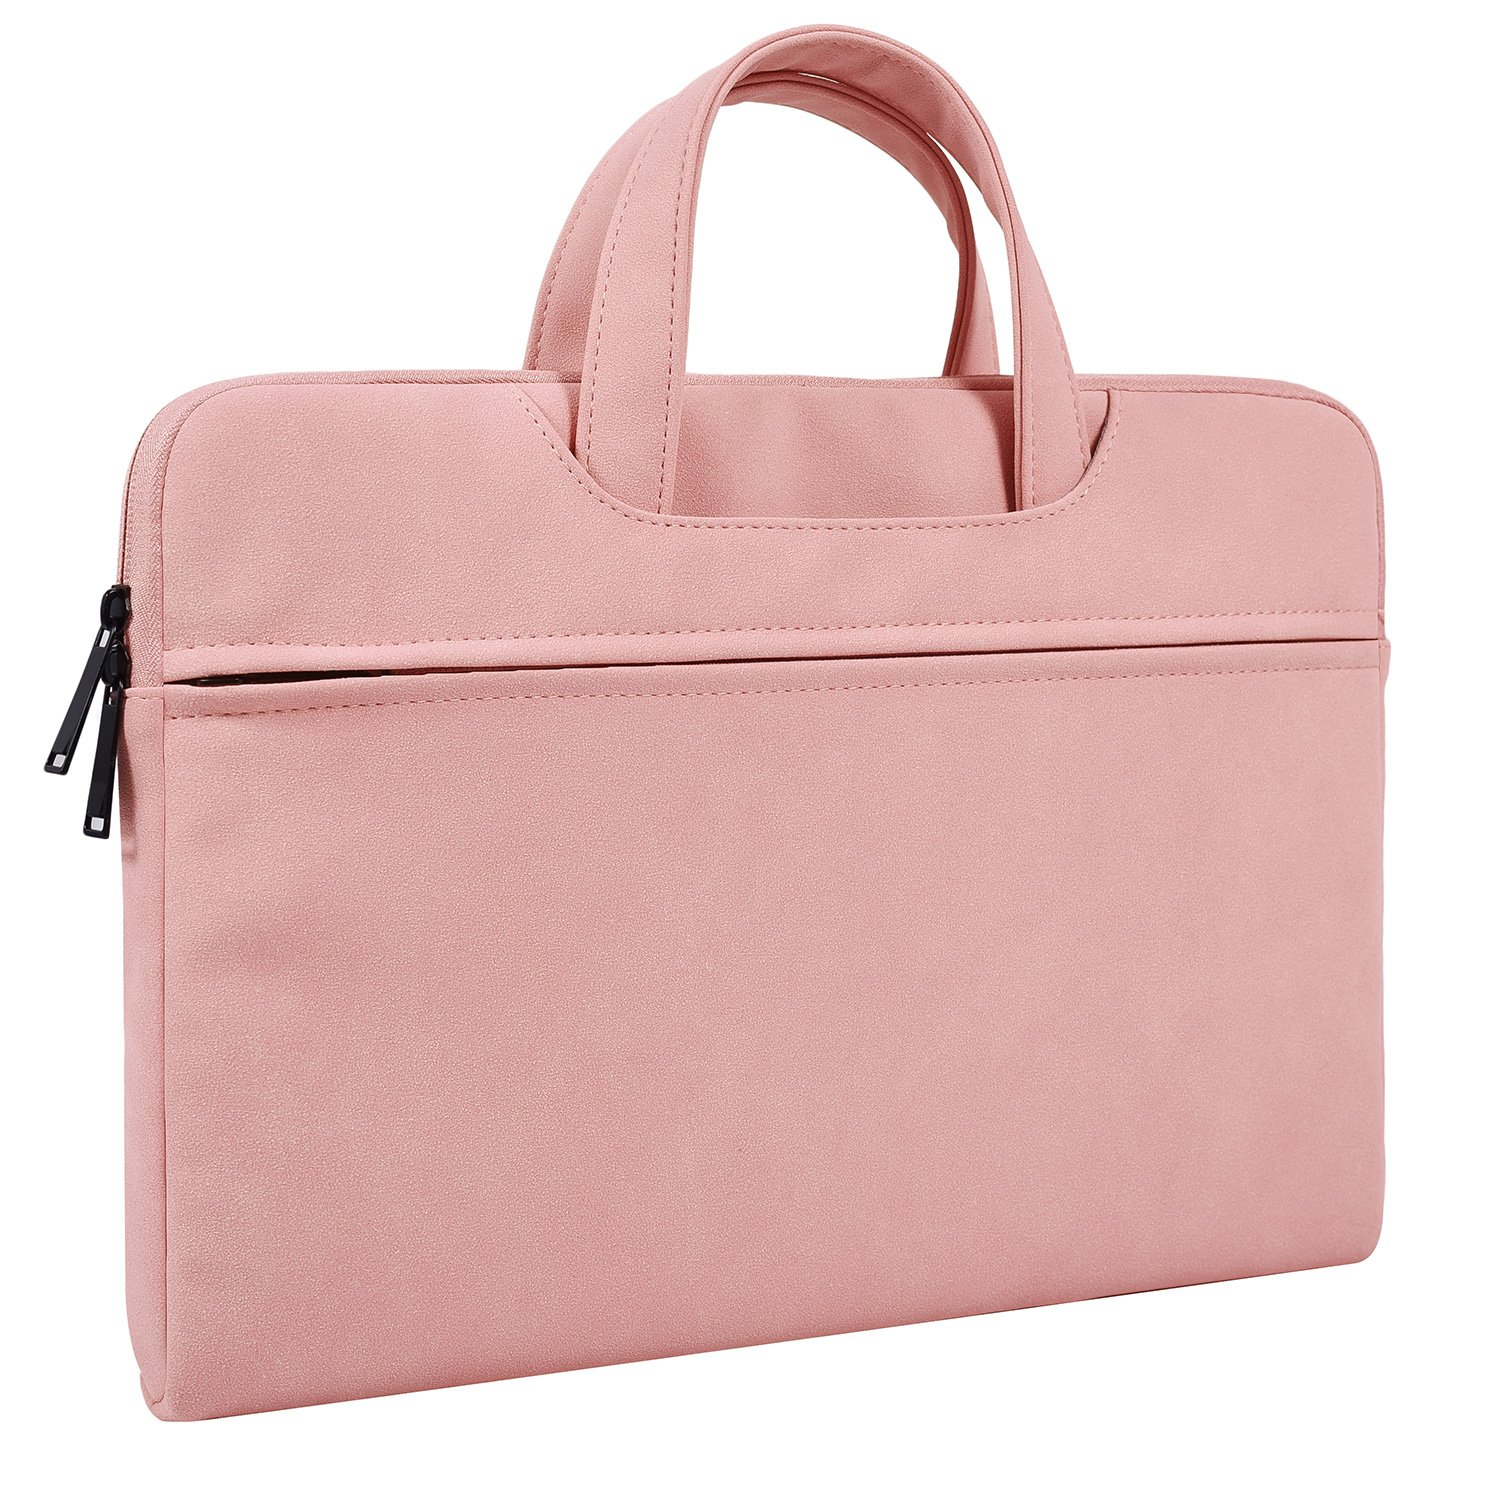 14-15 Inch Premium Leather Laptop Brifecase for MacBook Pro 15 Touch Bar, Acer Chromebook 14, HP Stream 14, Dell XPS 15 9575, ThinkPad X1 Carbon, 14 inch Laptop Bag for Teenage Girls Women, Pink